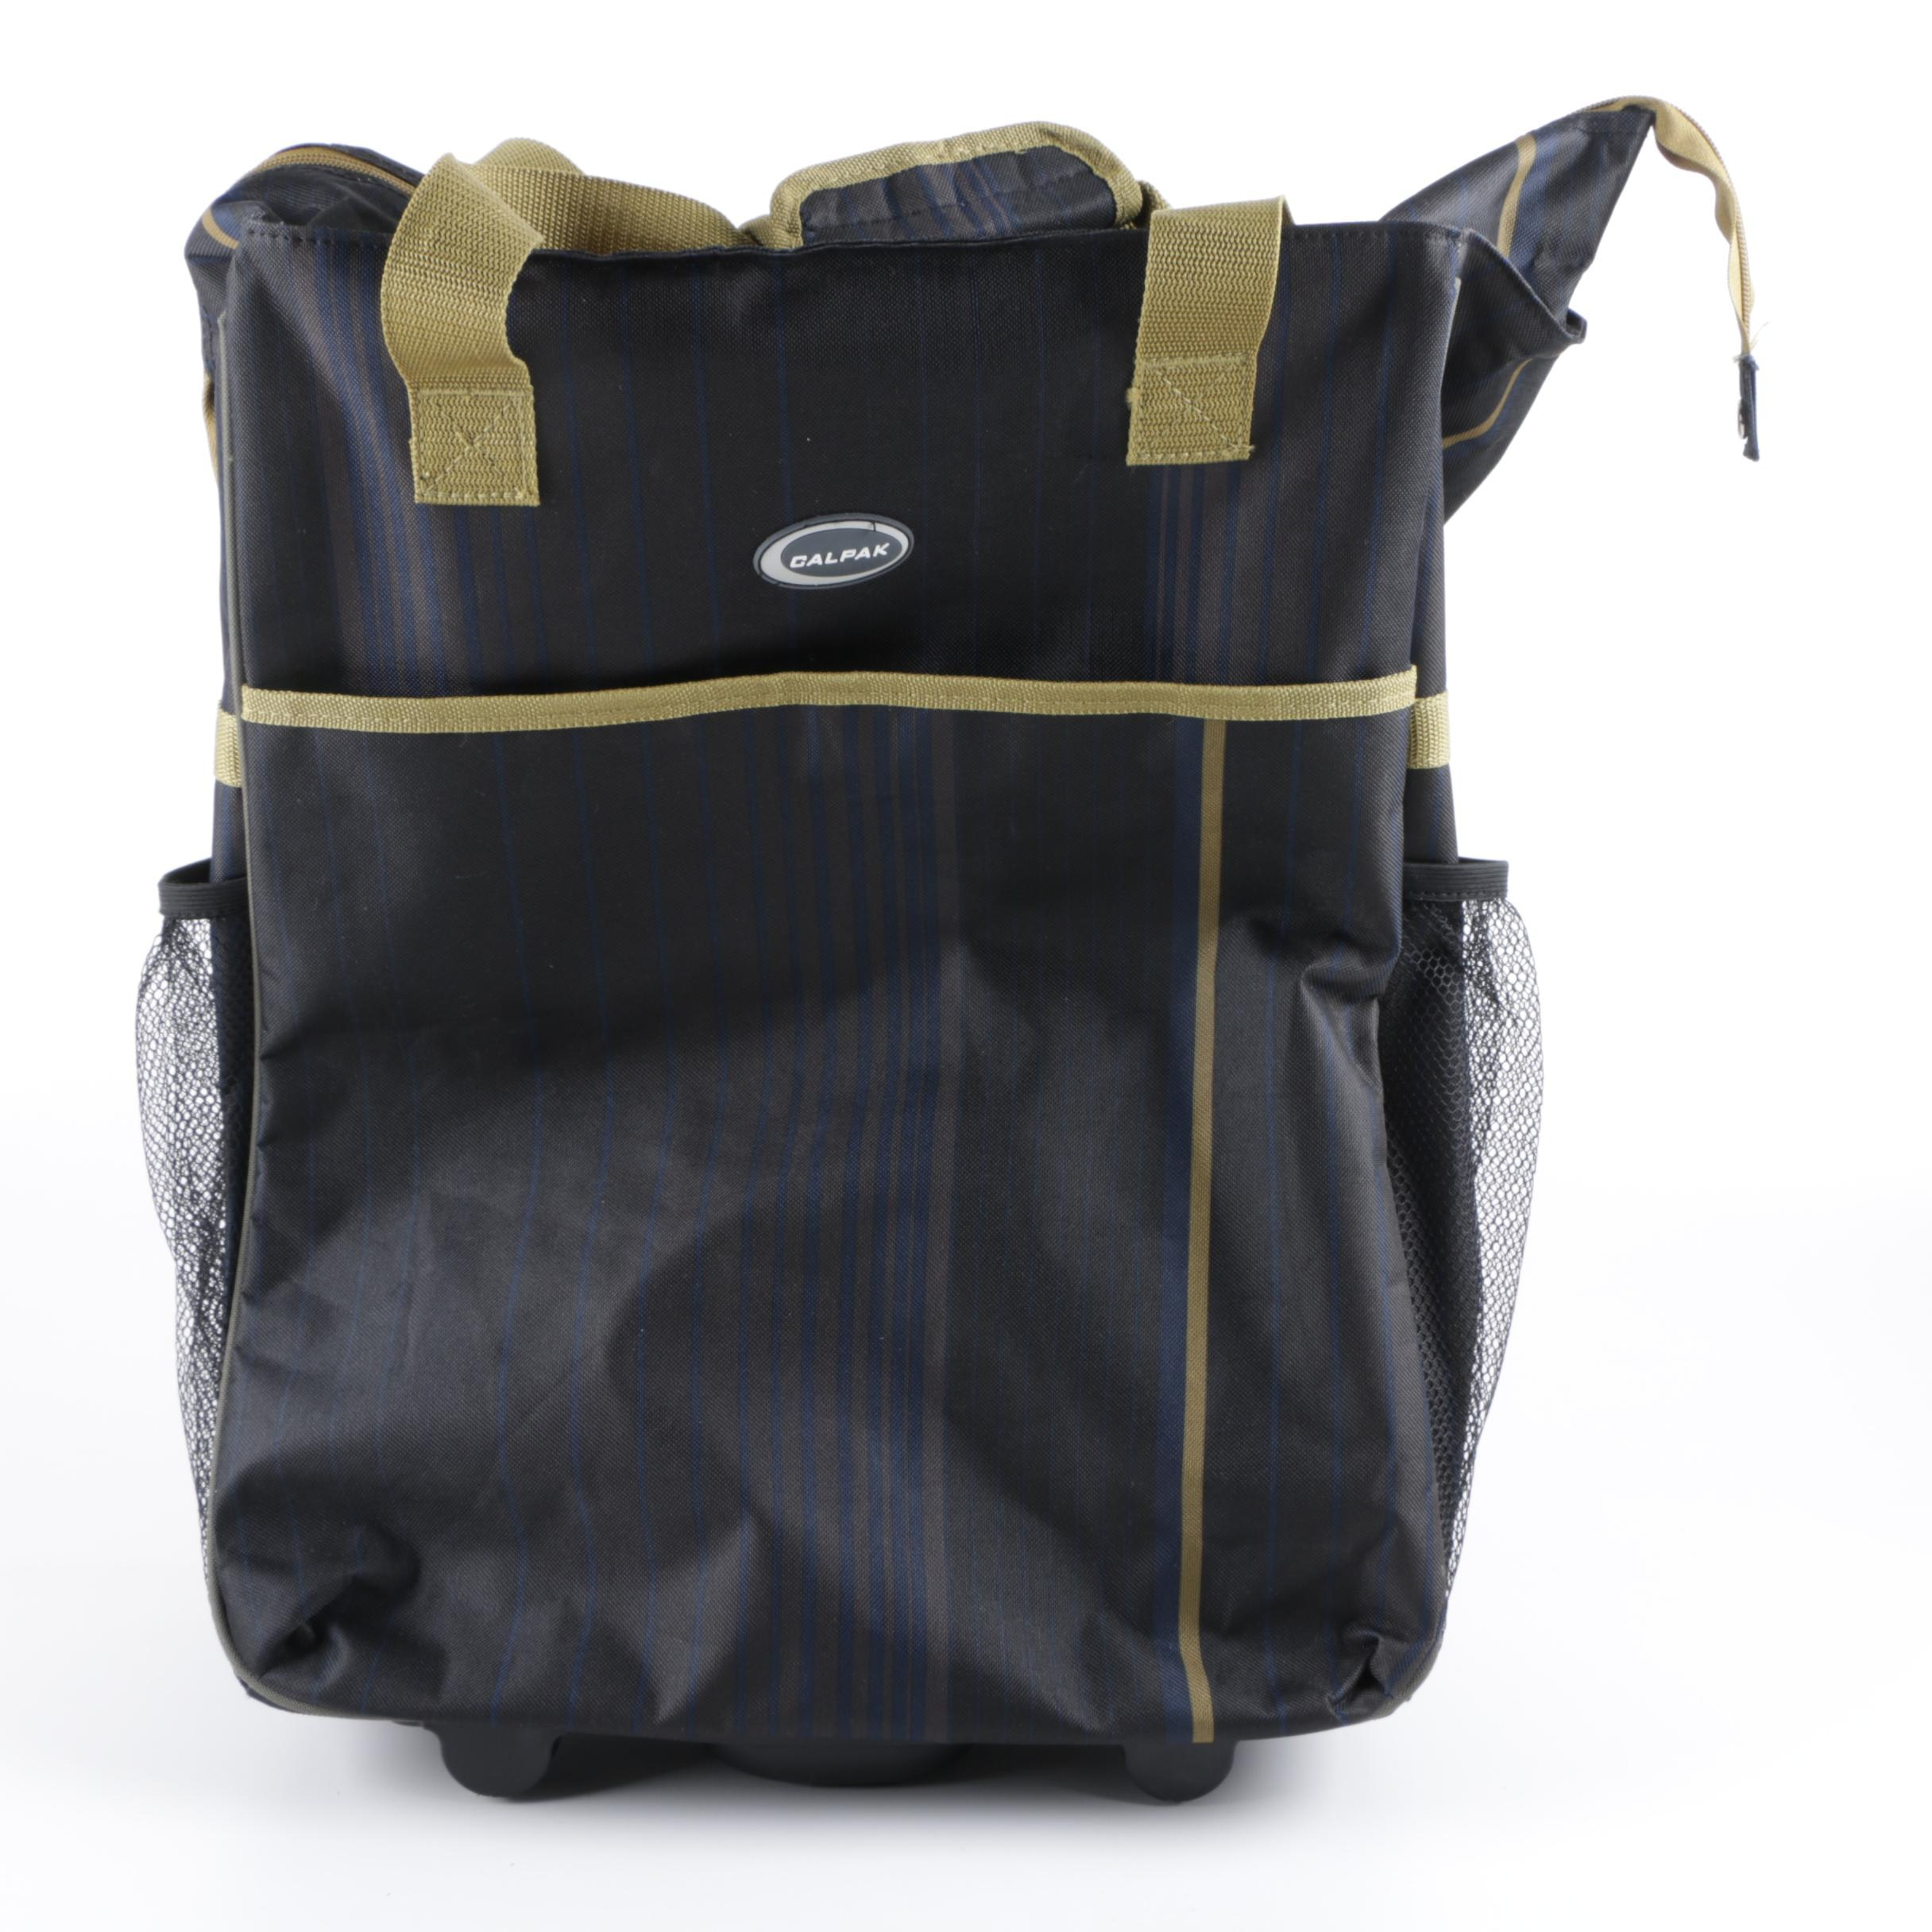 CalPak Big Eazy Woven Polyester Rolling Luggage Bag